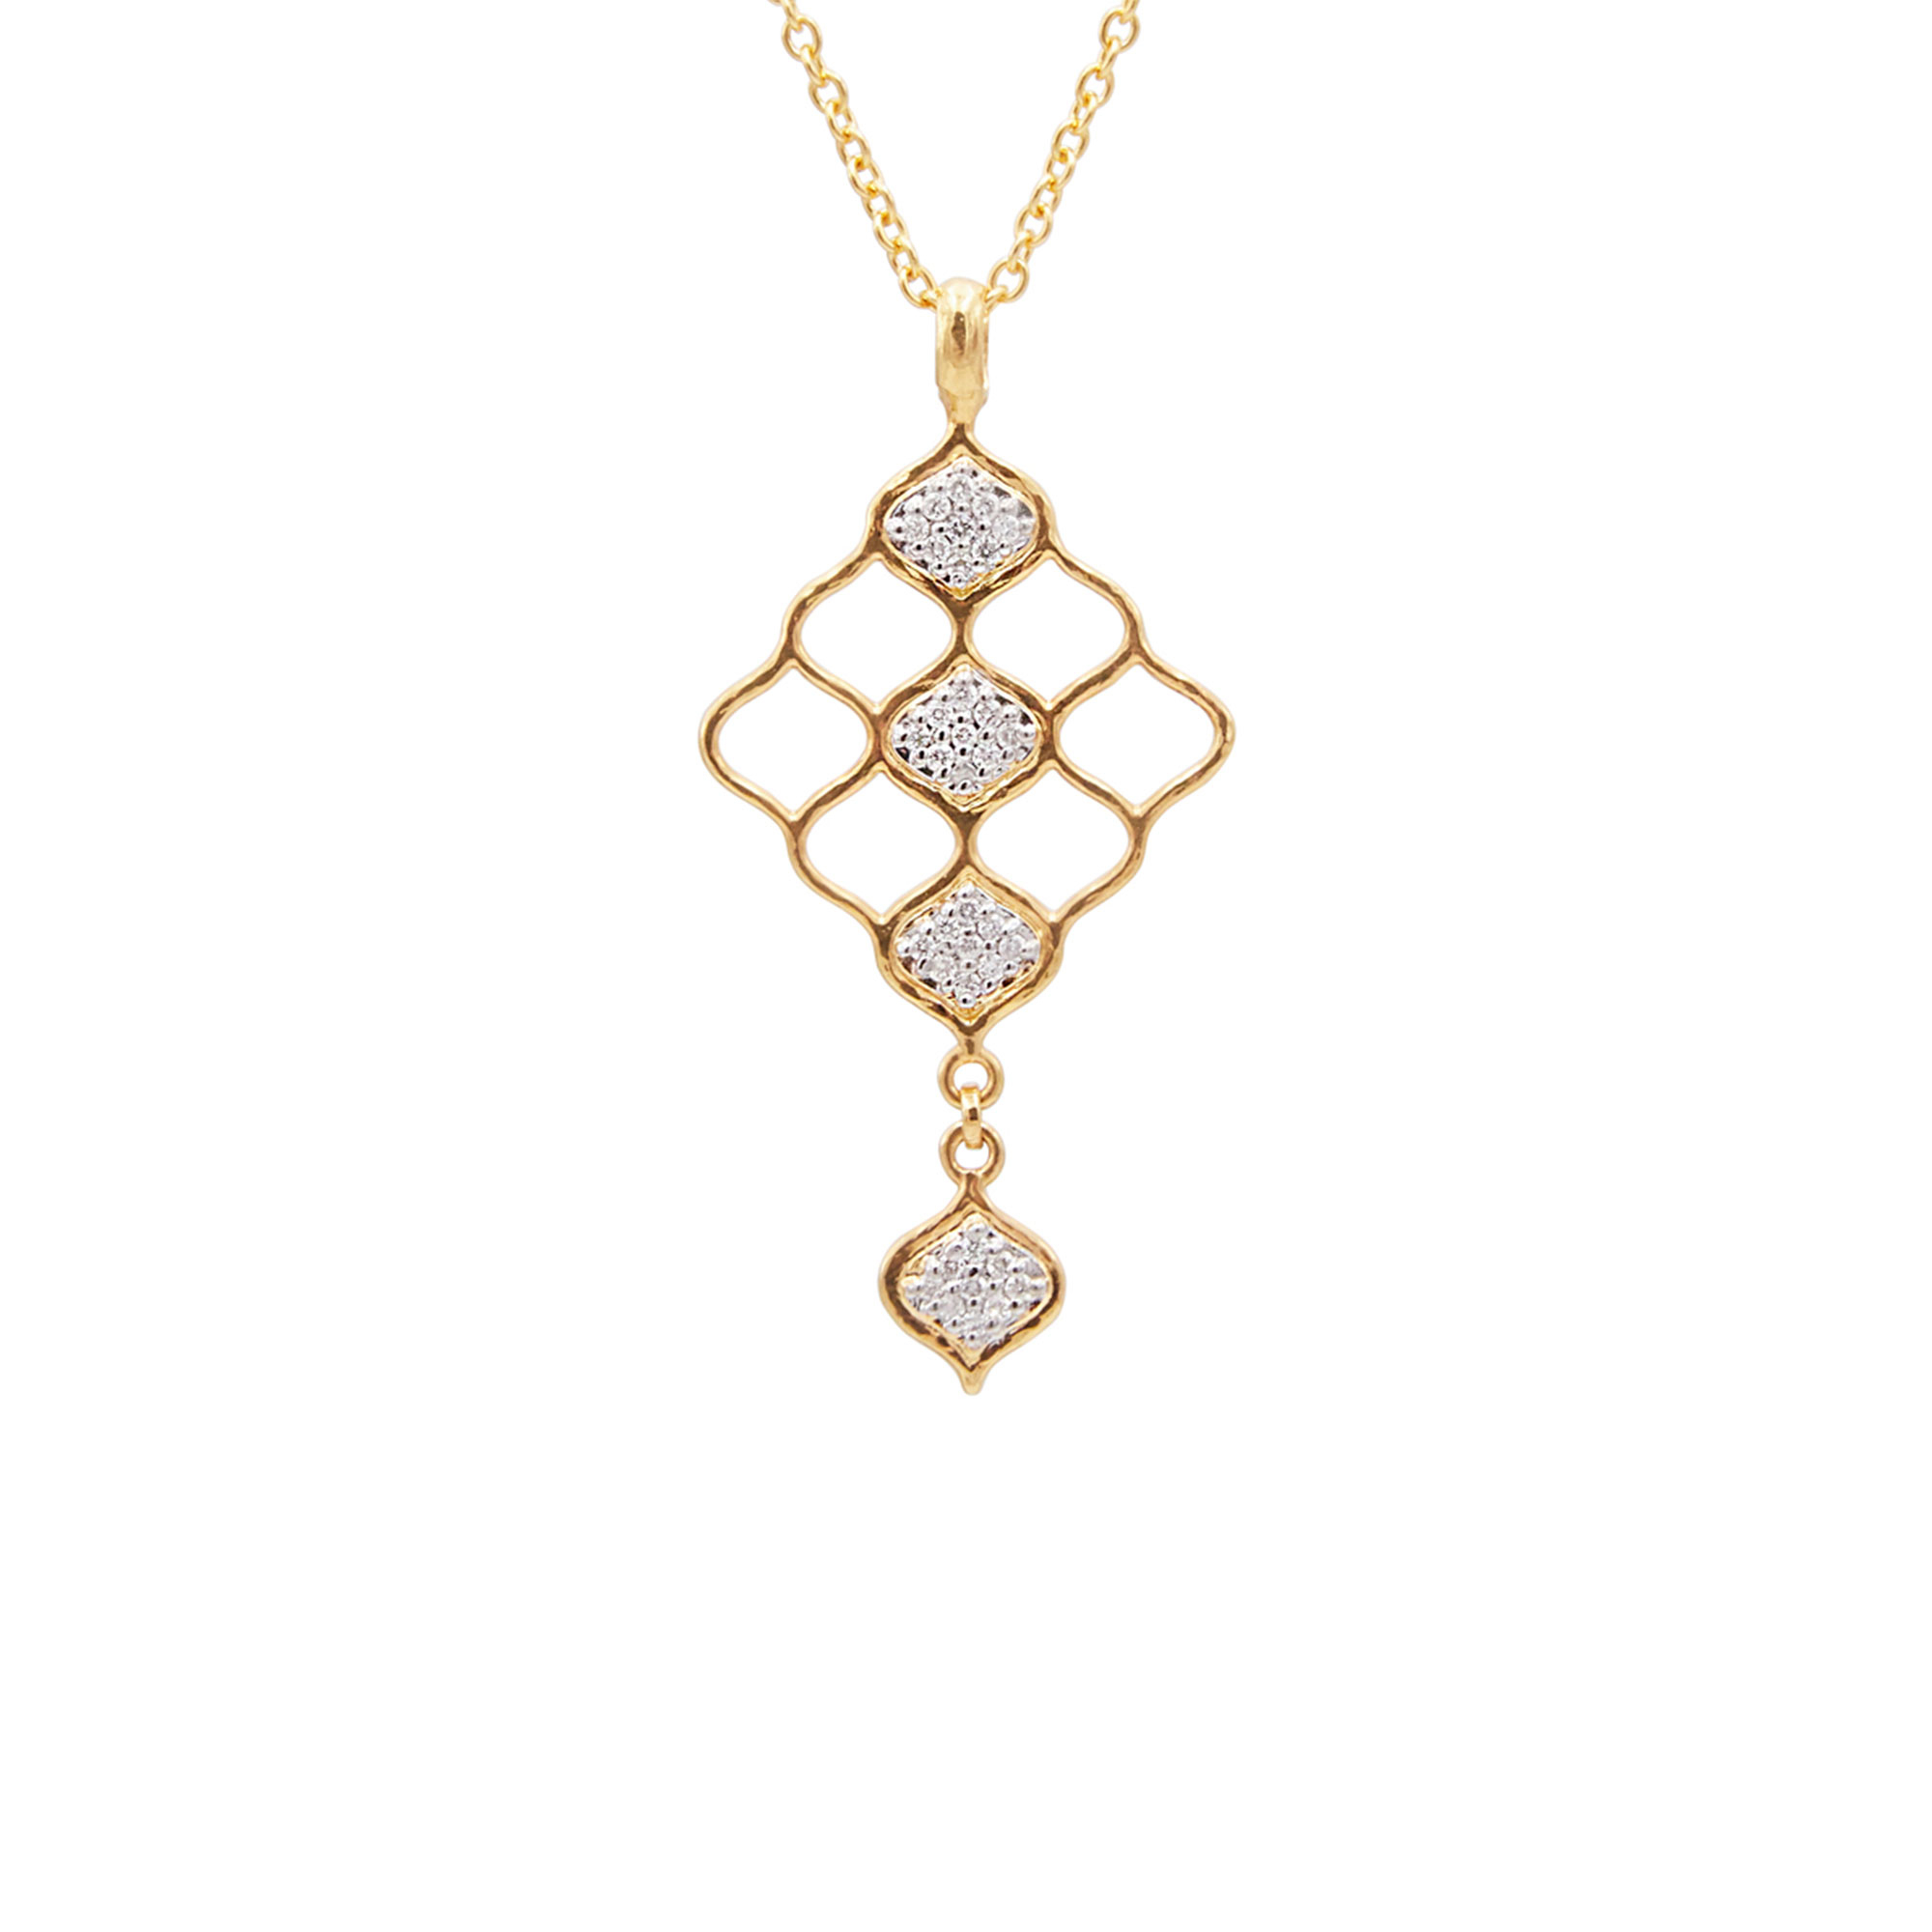 Gurhan 18-22K Yellow Gold .252cts White Diamond Gold Necklace with Stones GUN-YG-DI-7635-18